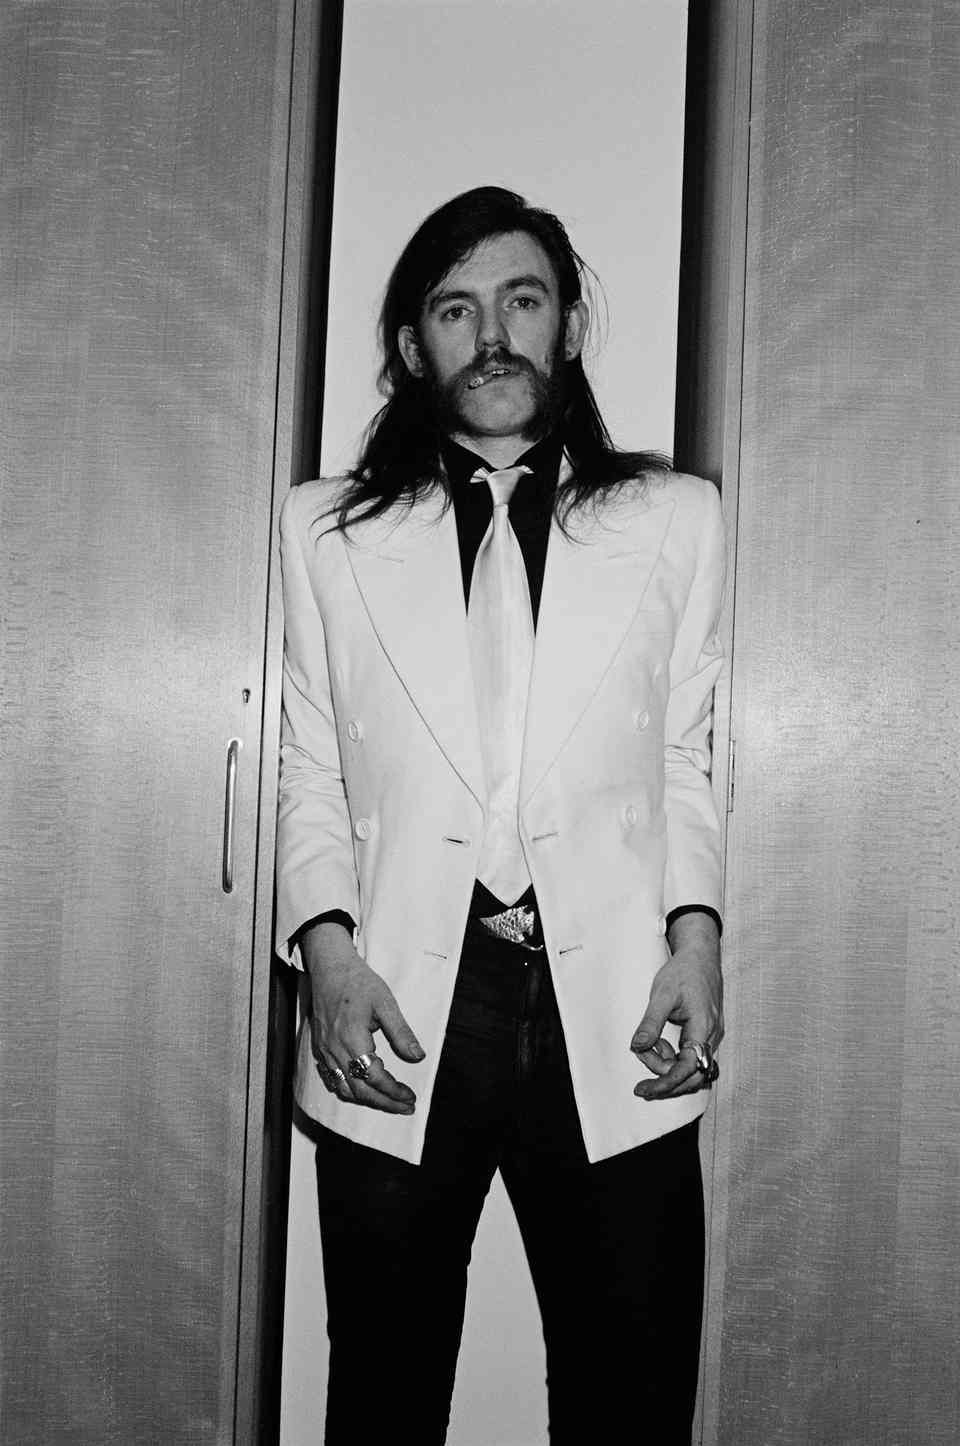 Backstage at Top Of The Pops TV Studios in London in February 1981